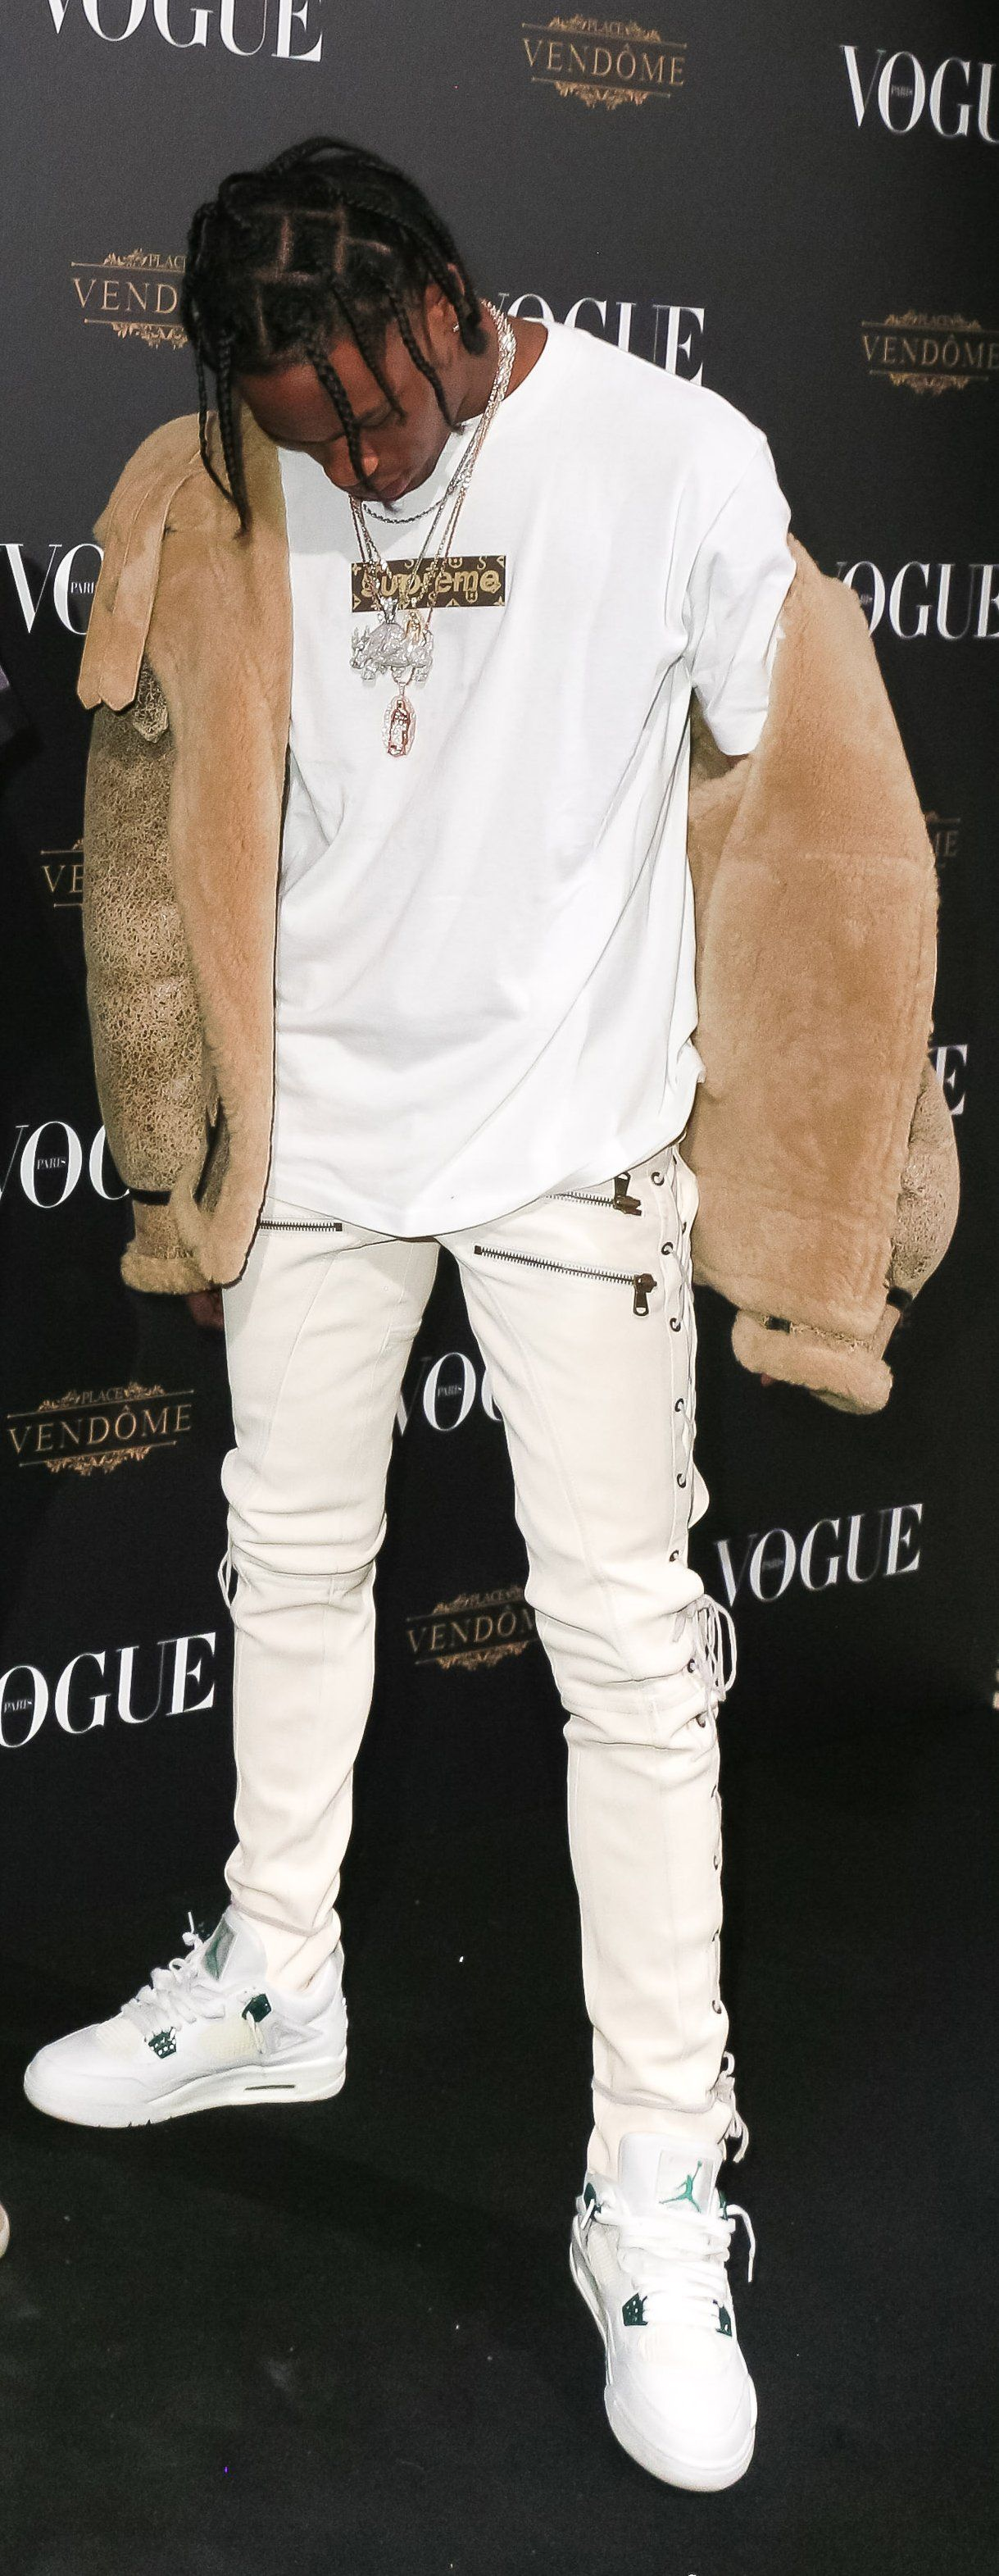 64030edf51f5 Loving this outfit from Travis with the LV Supreme tee, fur jacket and and  white J's on white denim...clean